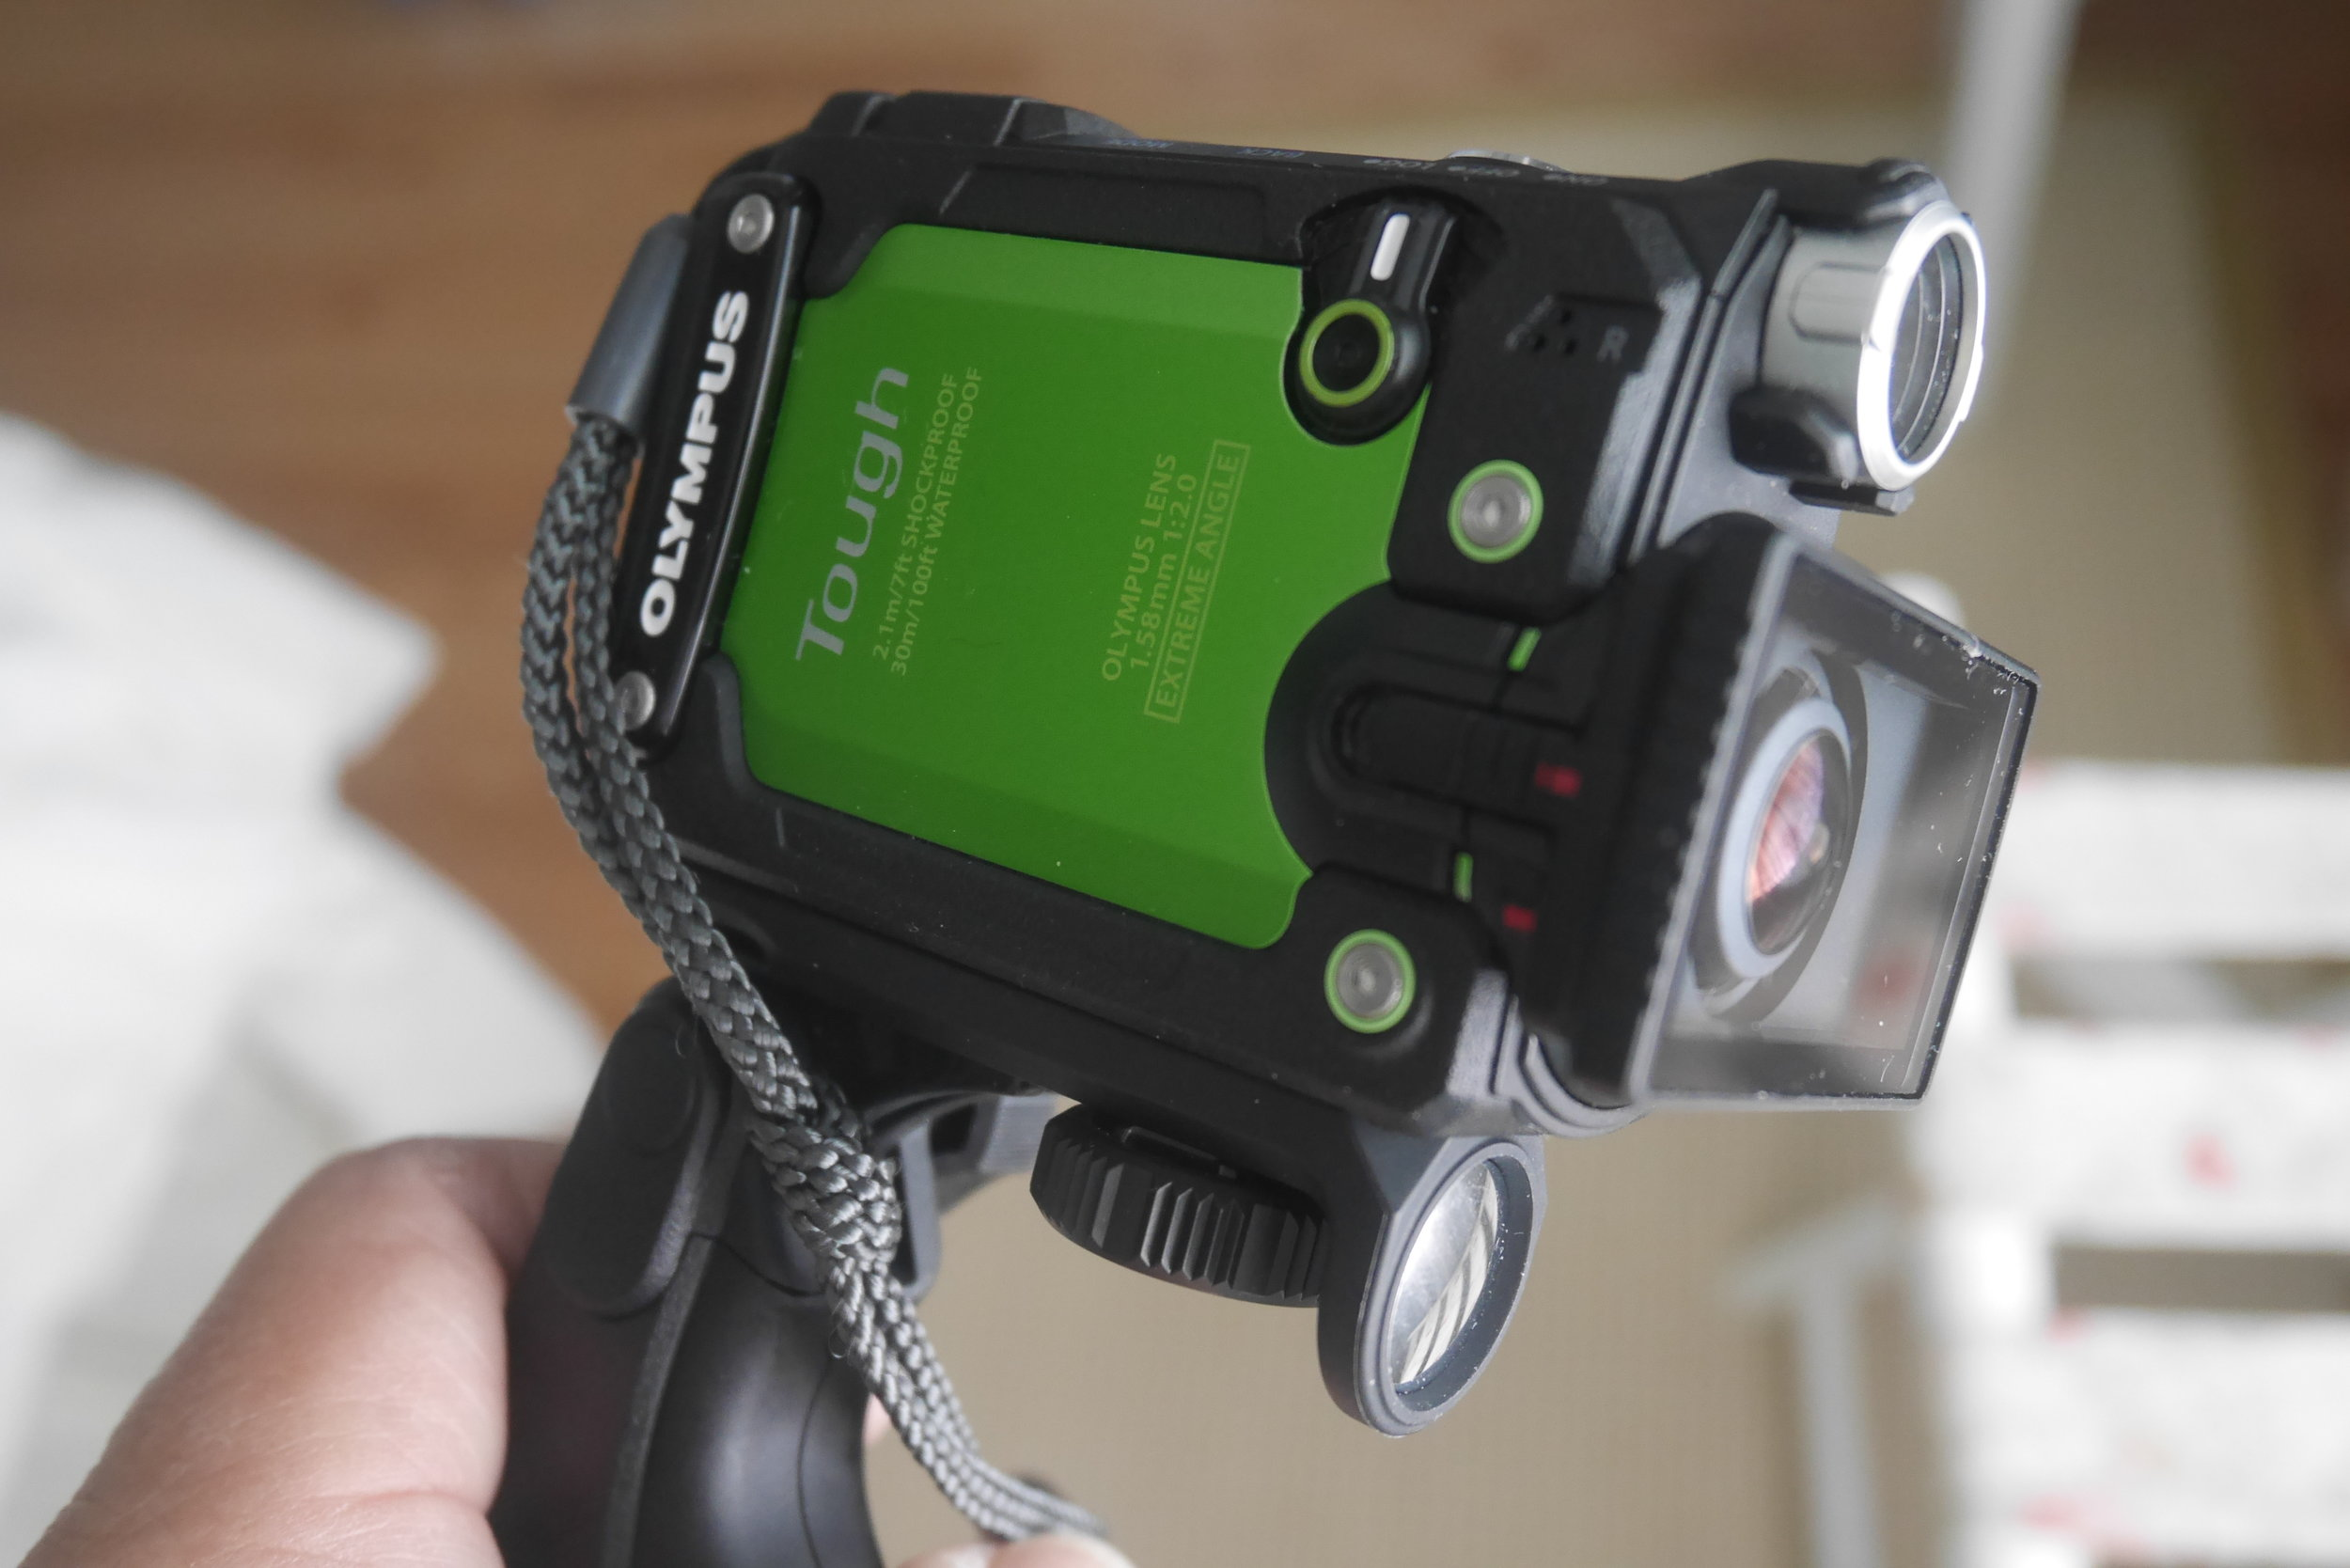 Olympus Tough TG-Tracker - Sell or Keep?